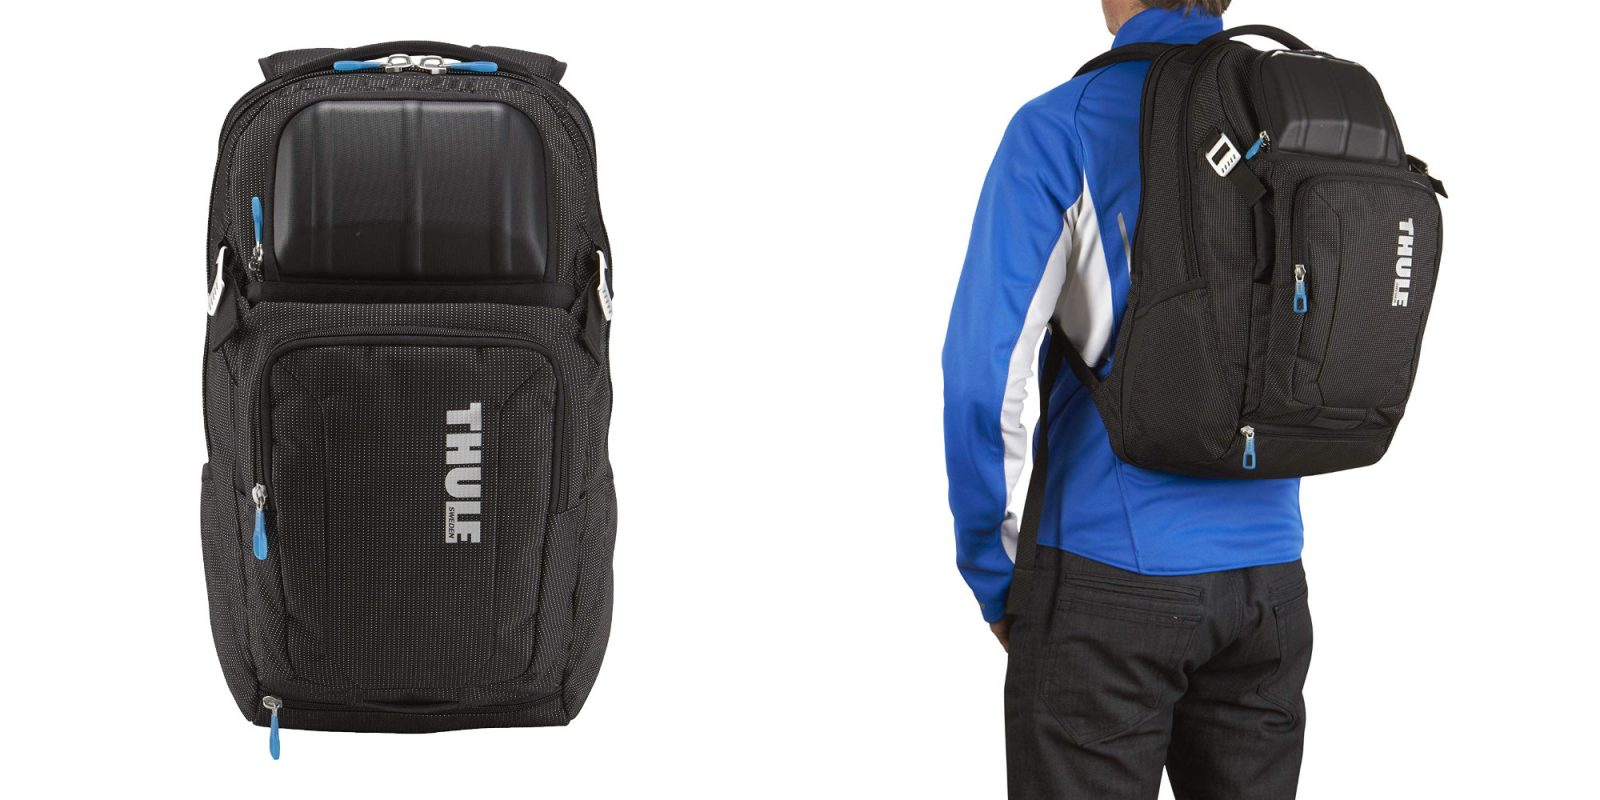 Your MacBook and iPad Pro want a Thule Crossover Backpack: $87.50 (Reg. $115+)